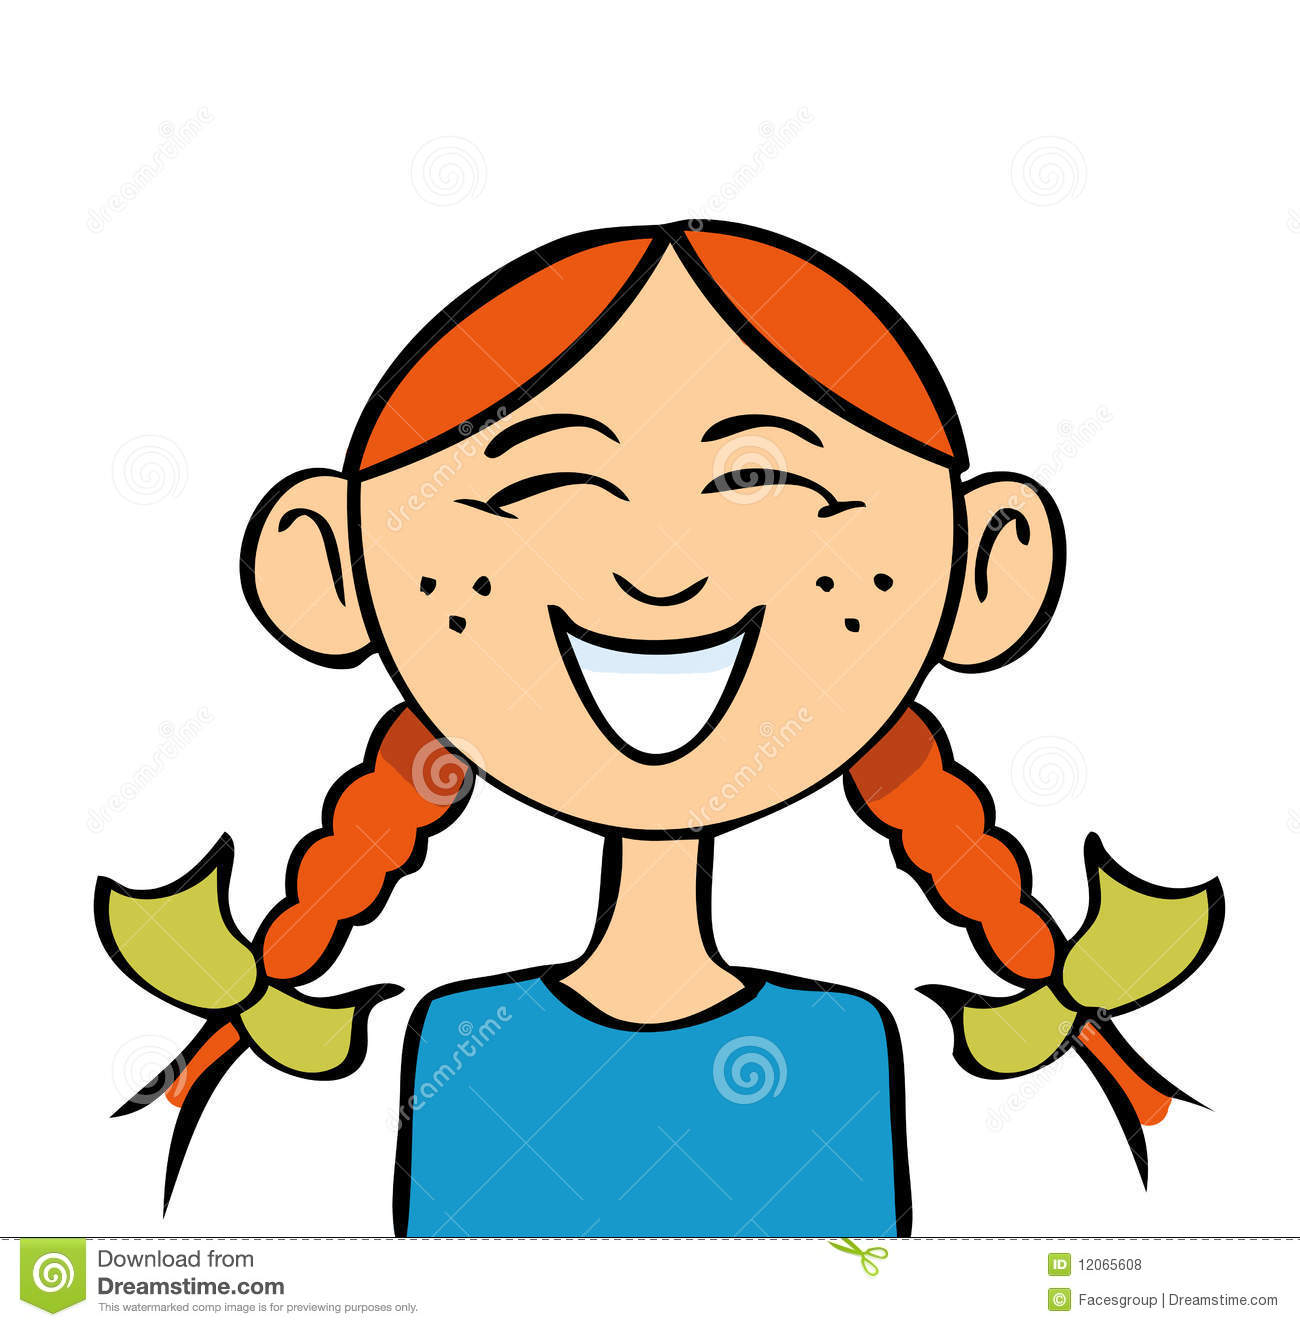 Laughing girl clipart picture stock Laughing girl clipart - ClipartFest picture stock